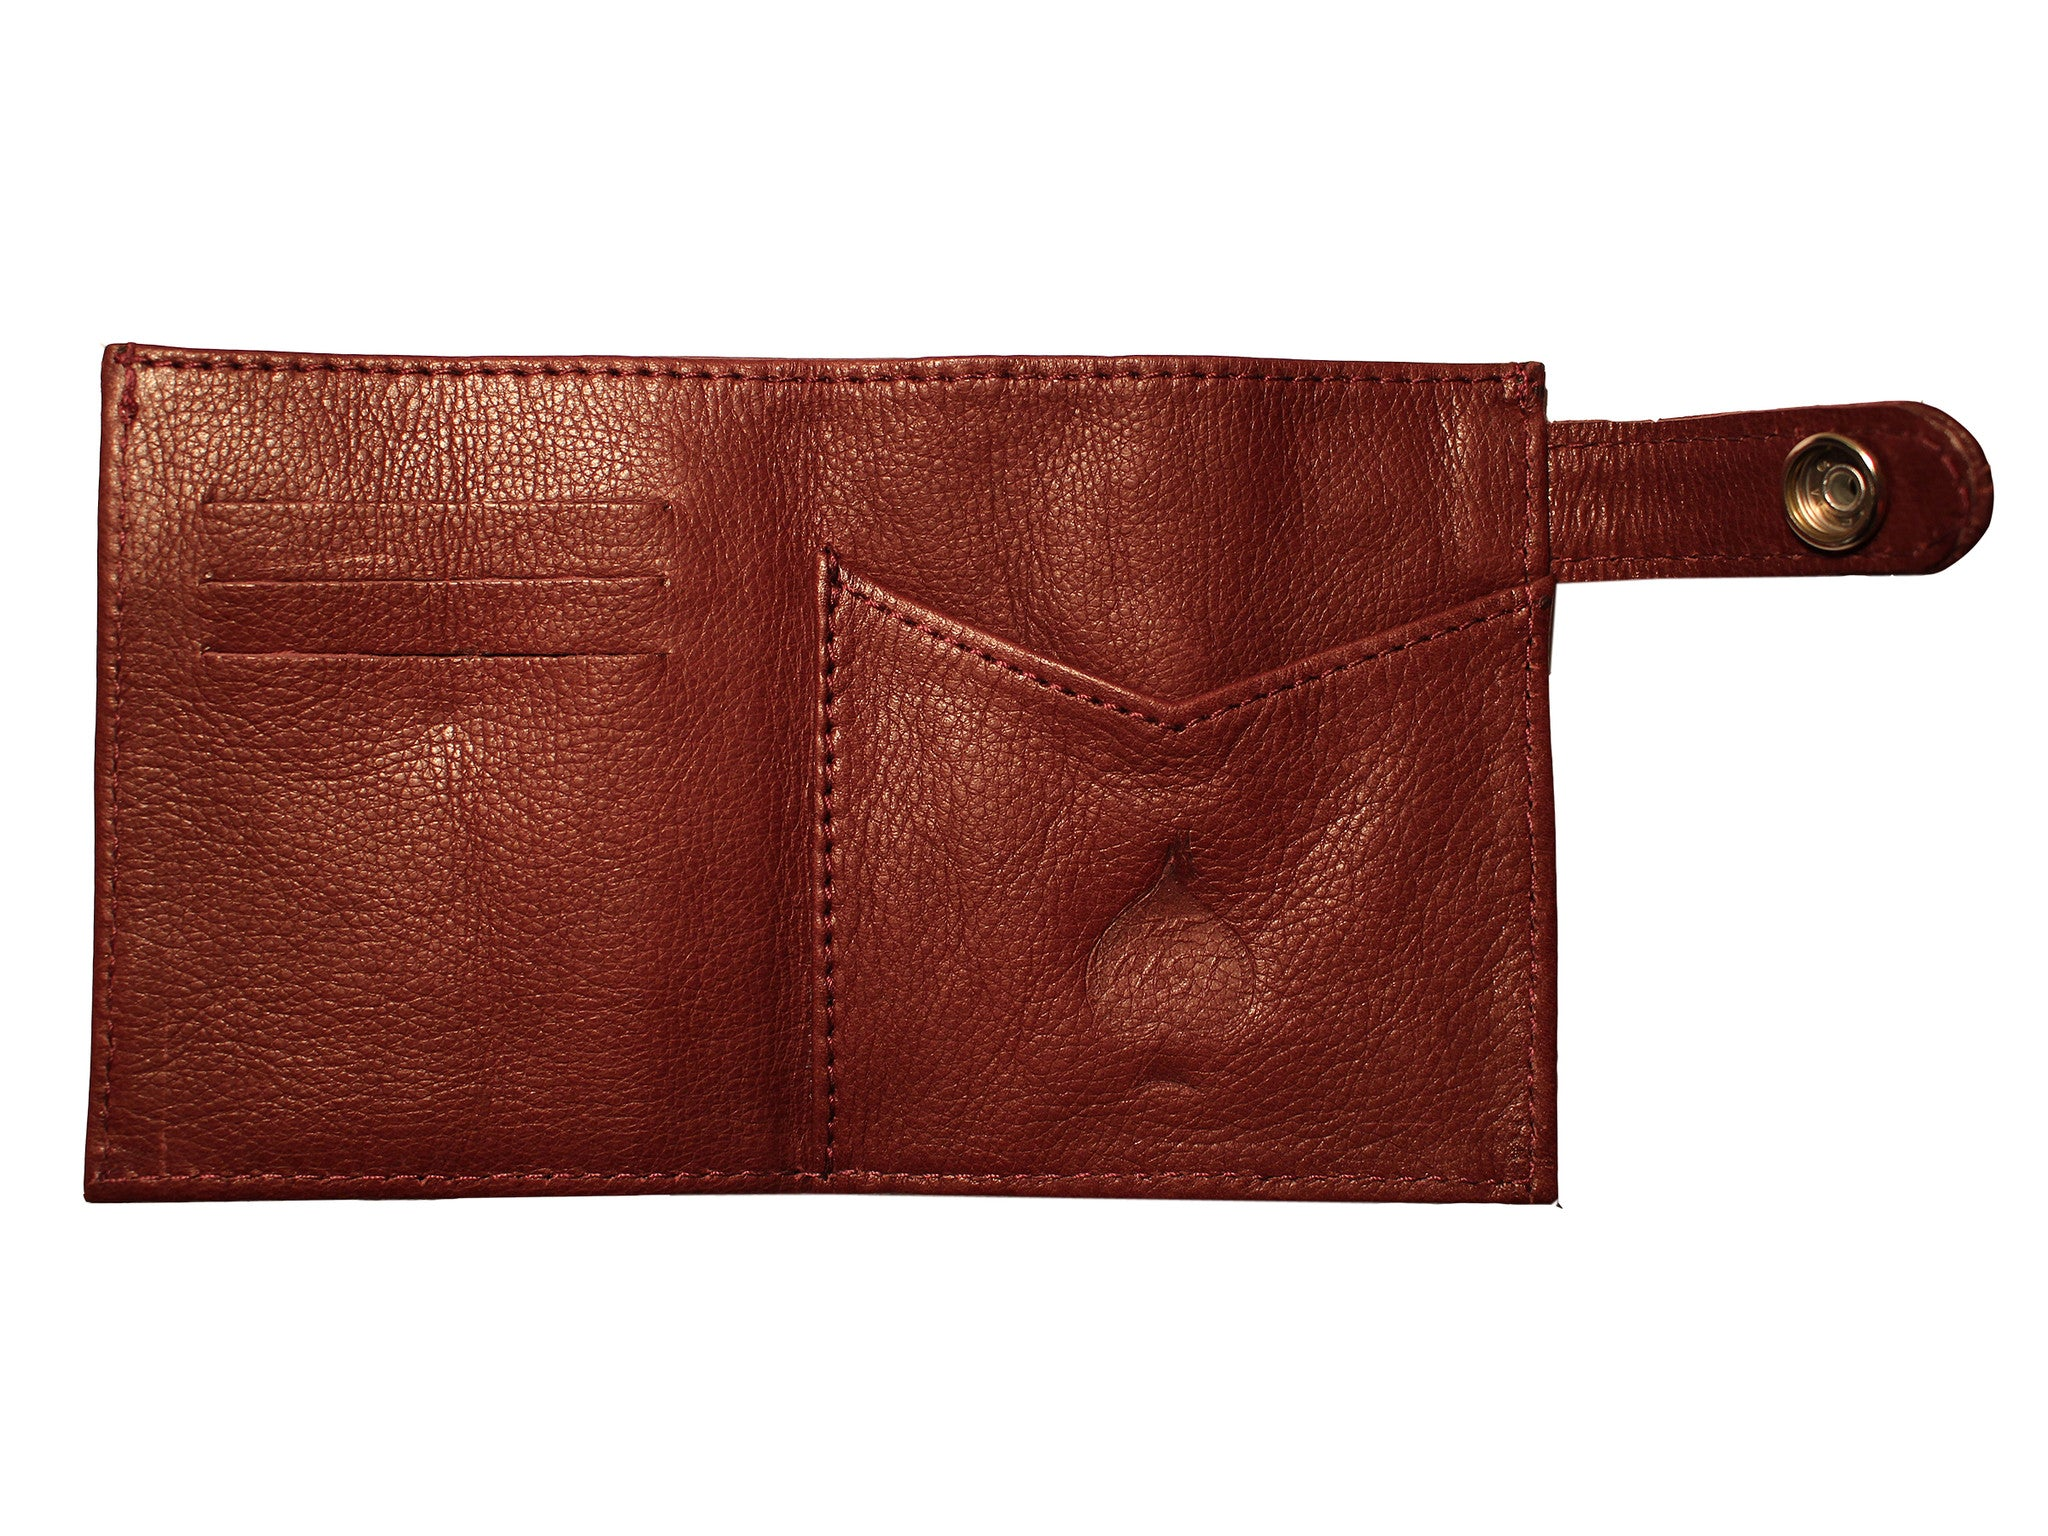 LUX WALLET (OXBLOOD)